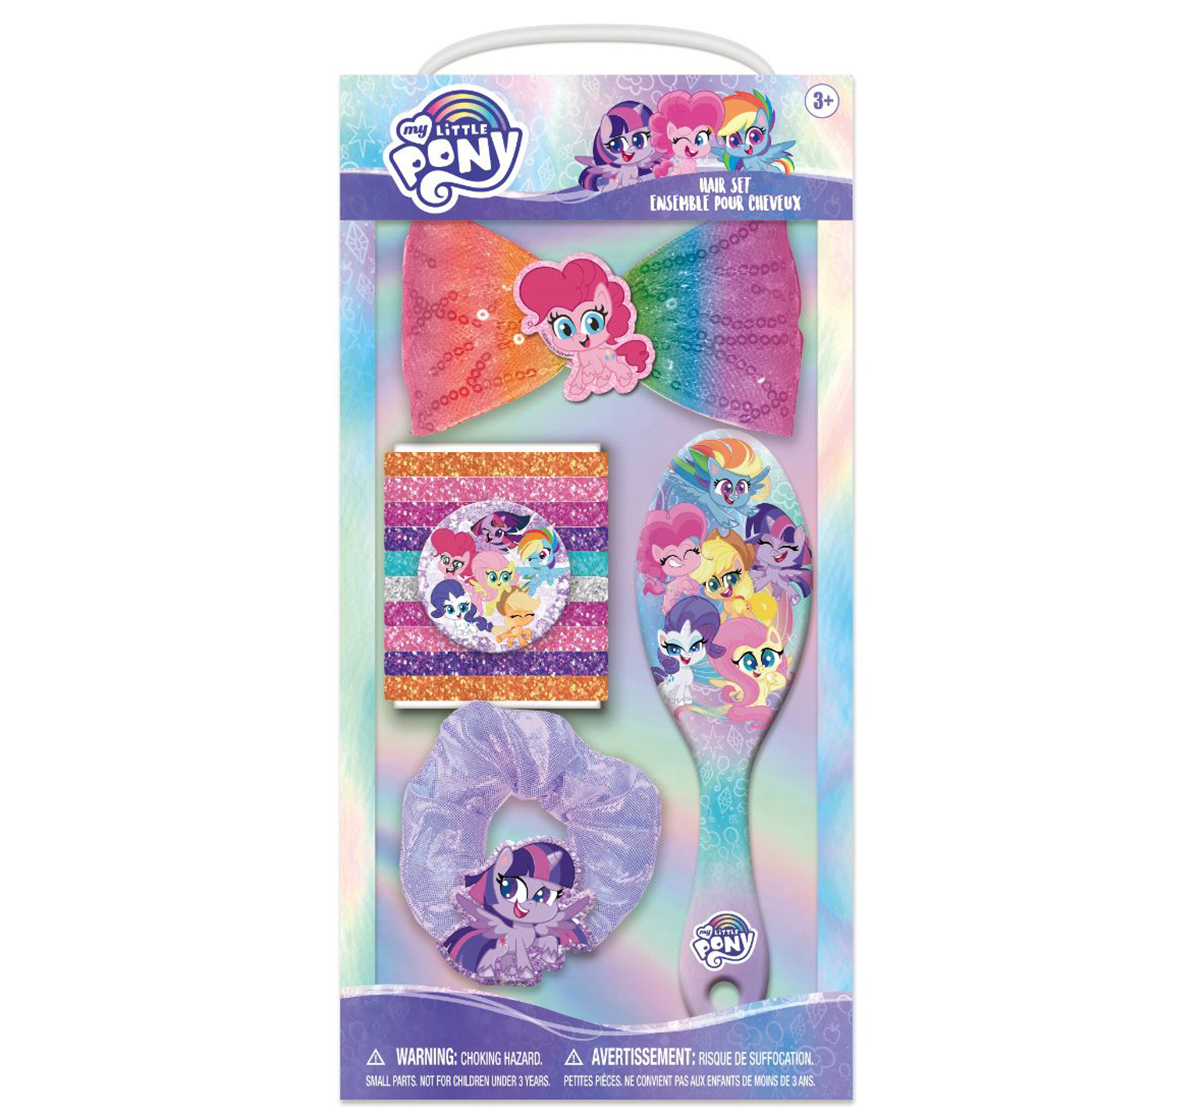 Townley Girl | NE My Little Pony Hair Accessories in Tin for Girls age 5Y+